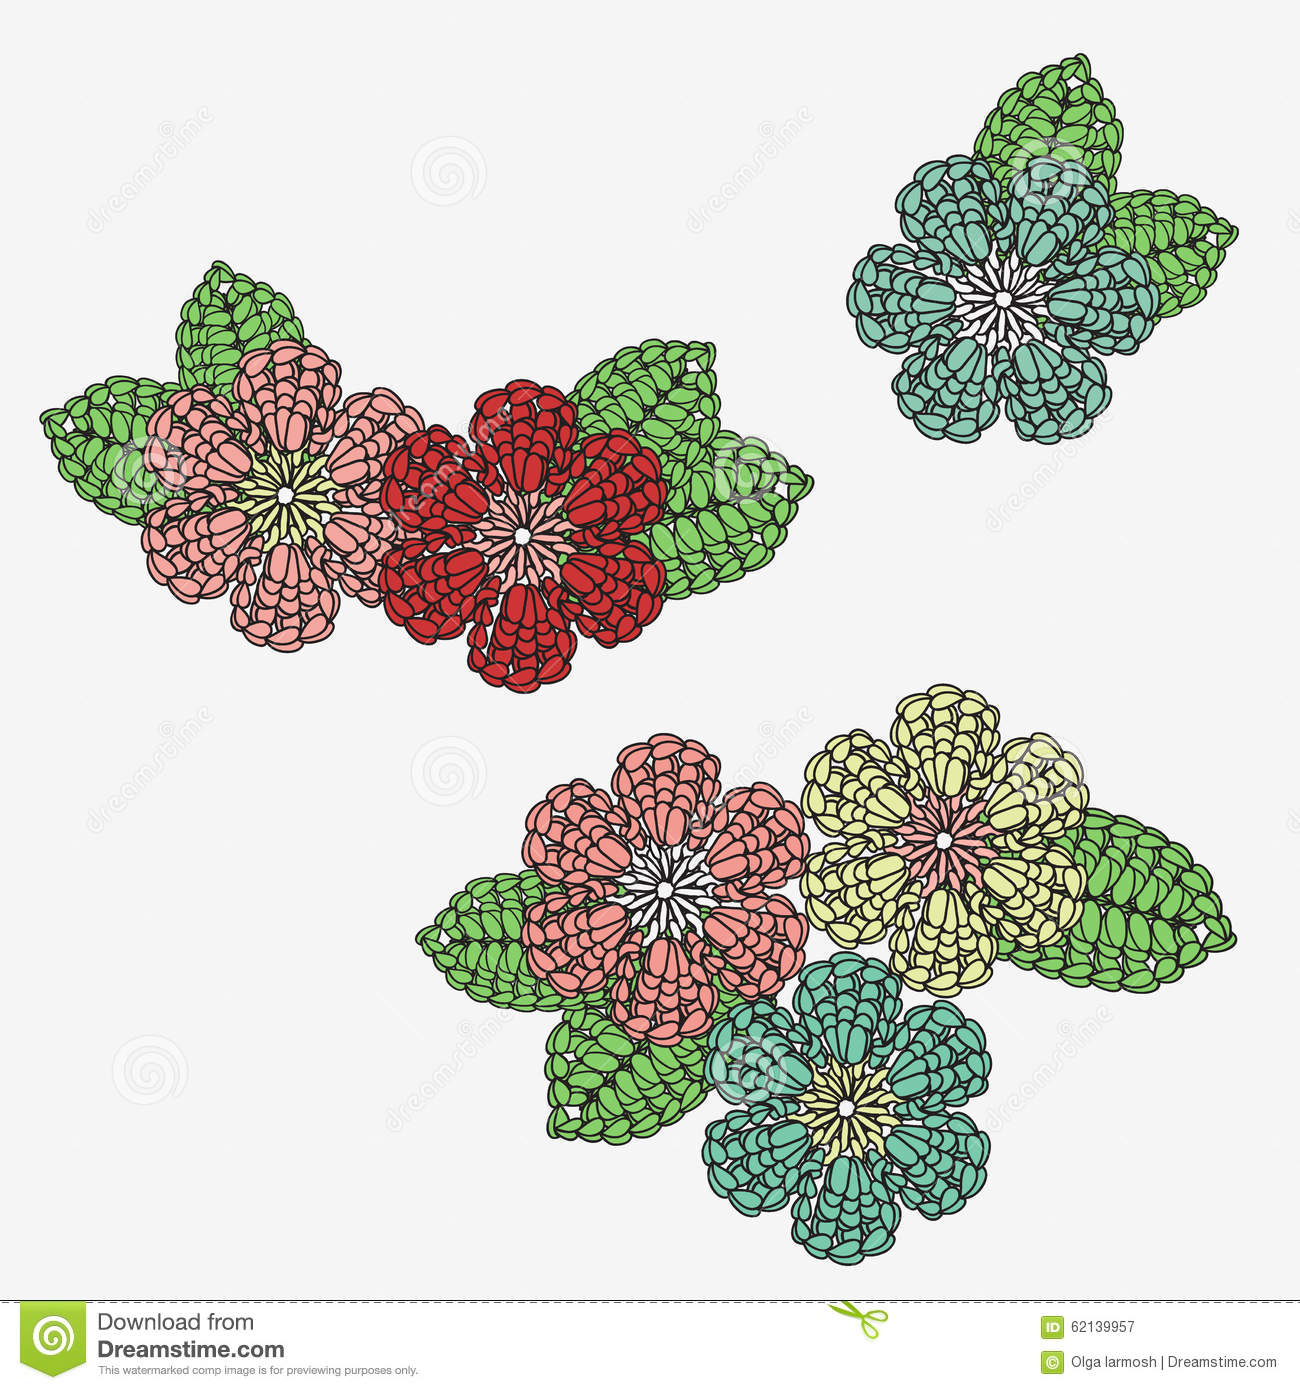 Crochet Flowers With Leaves. Stock Illustration - Illustration of ...